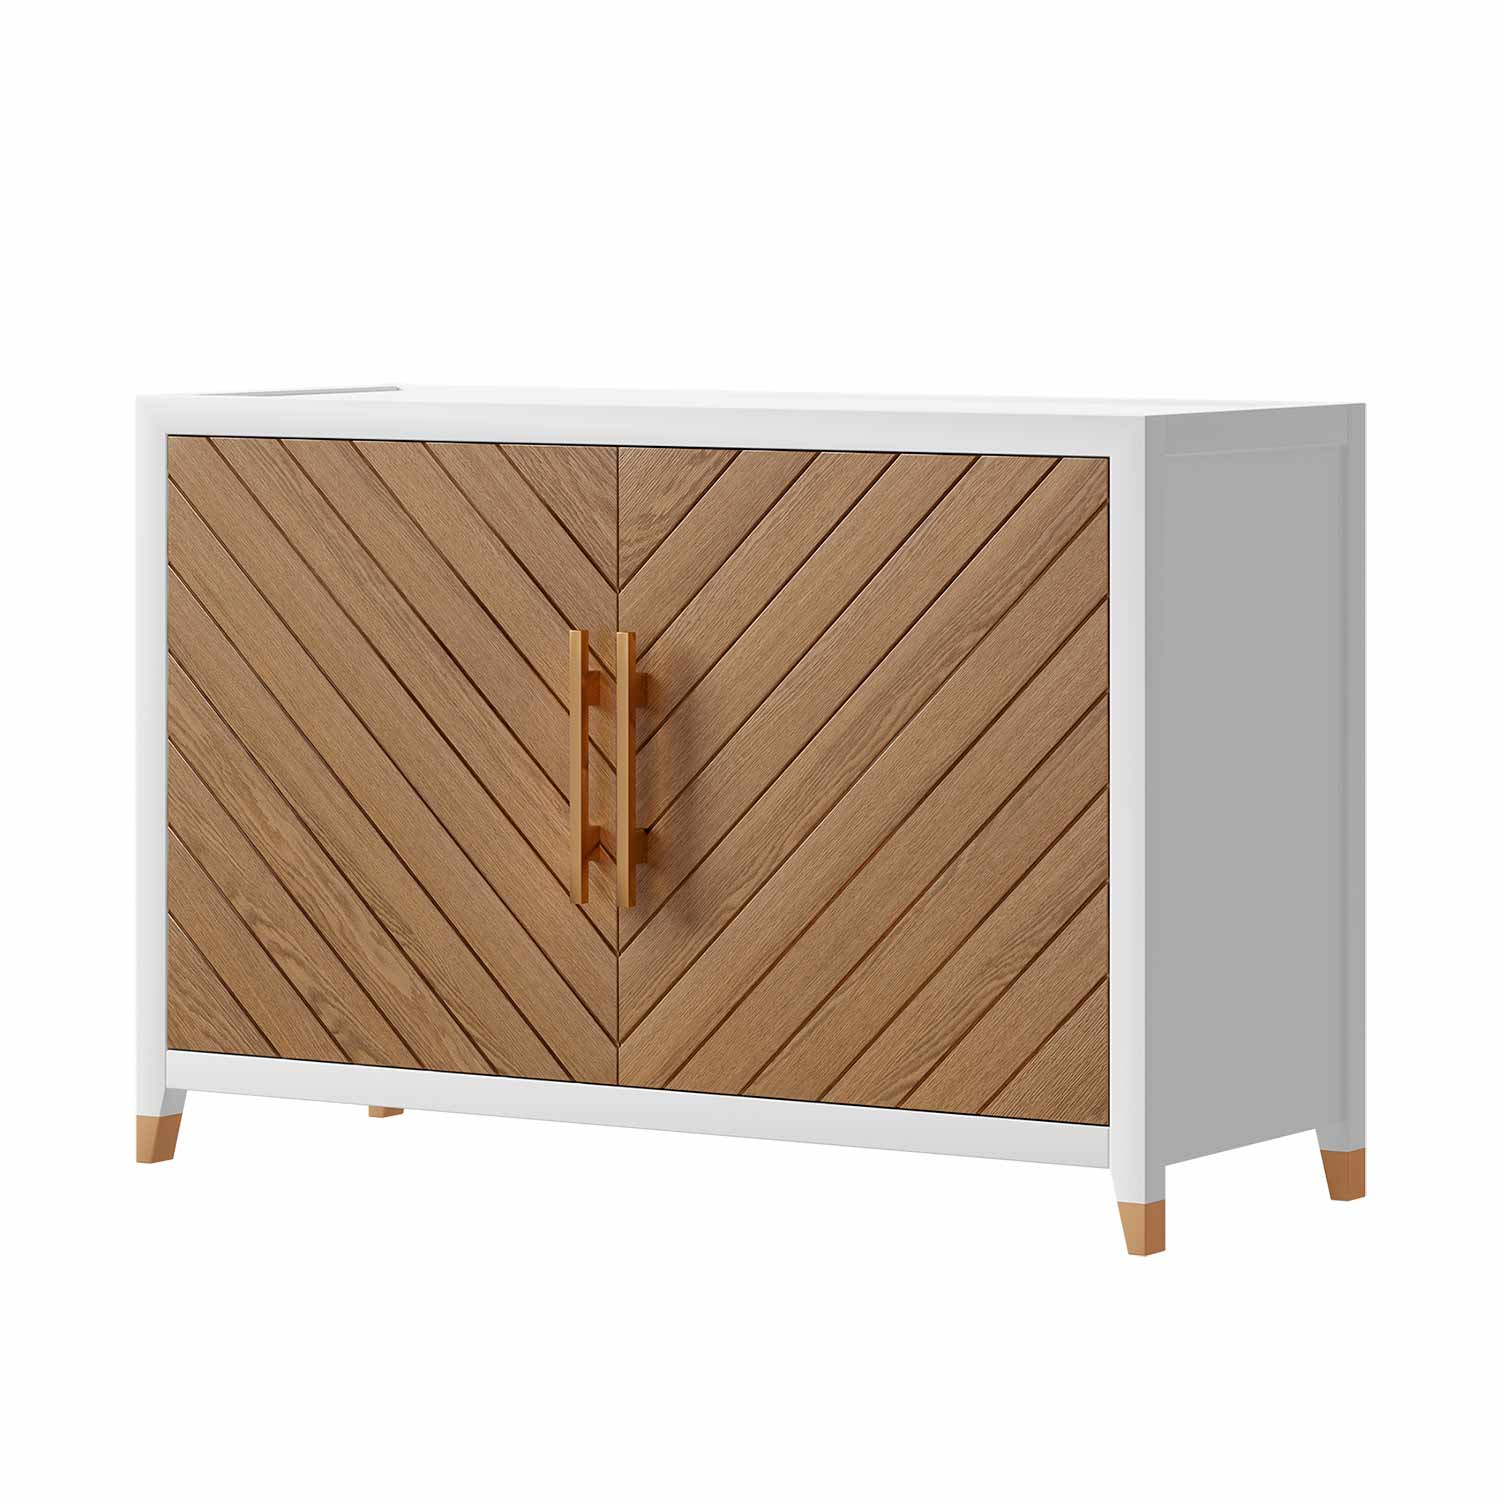 Chest-drawers-N1-Arnika-2